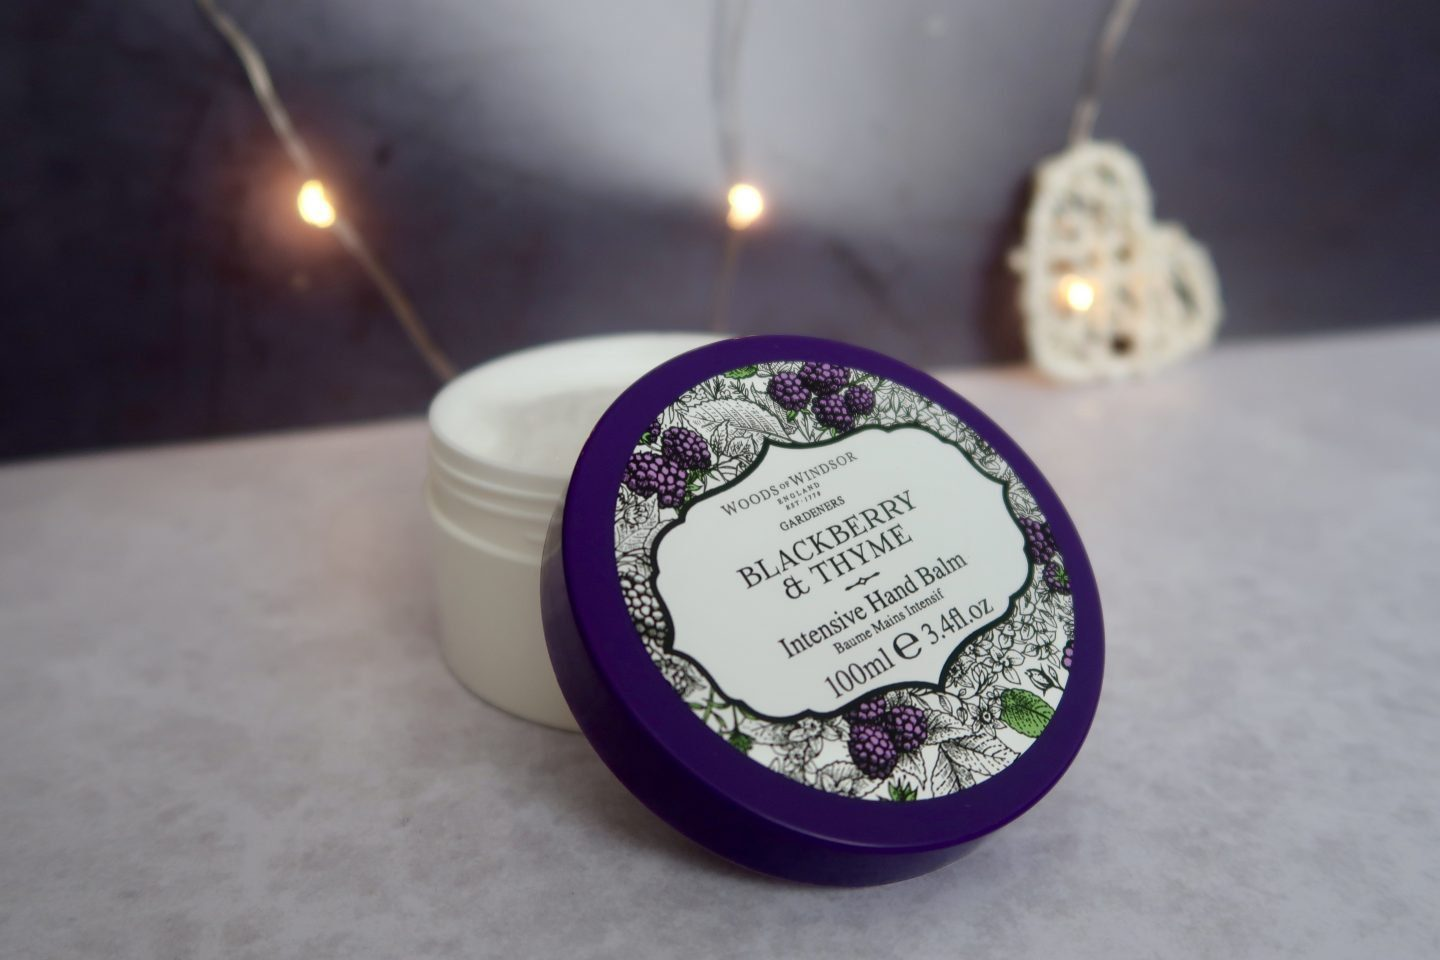 A tub of intense hand balm sitting open with the lid propped up on the tub